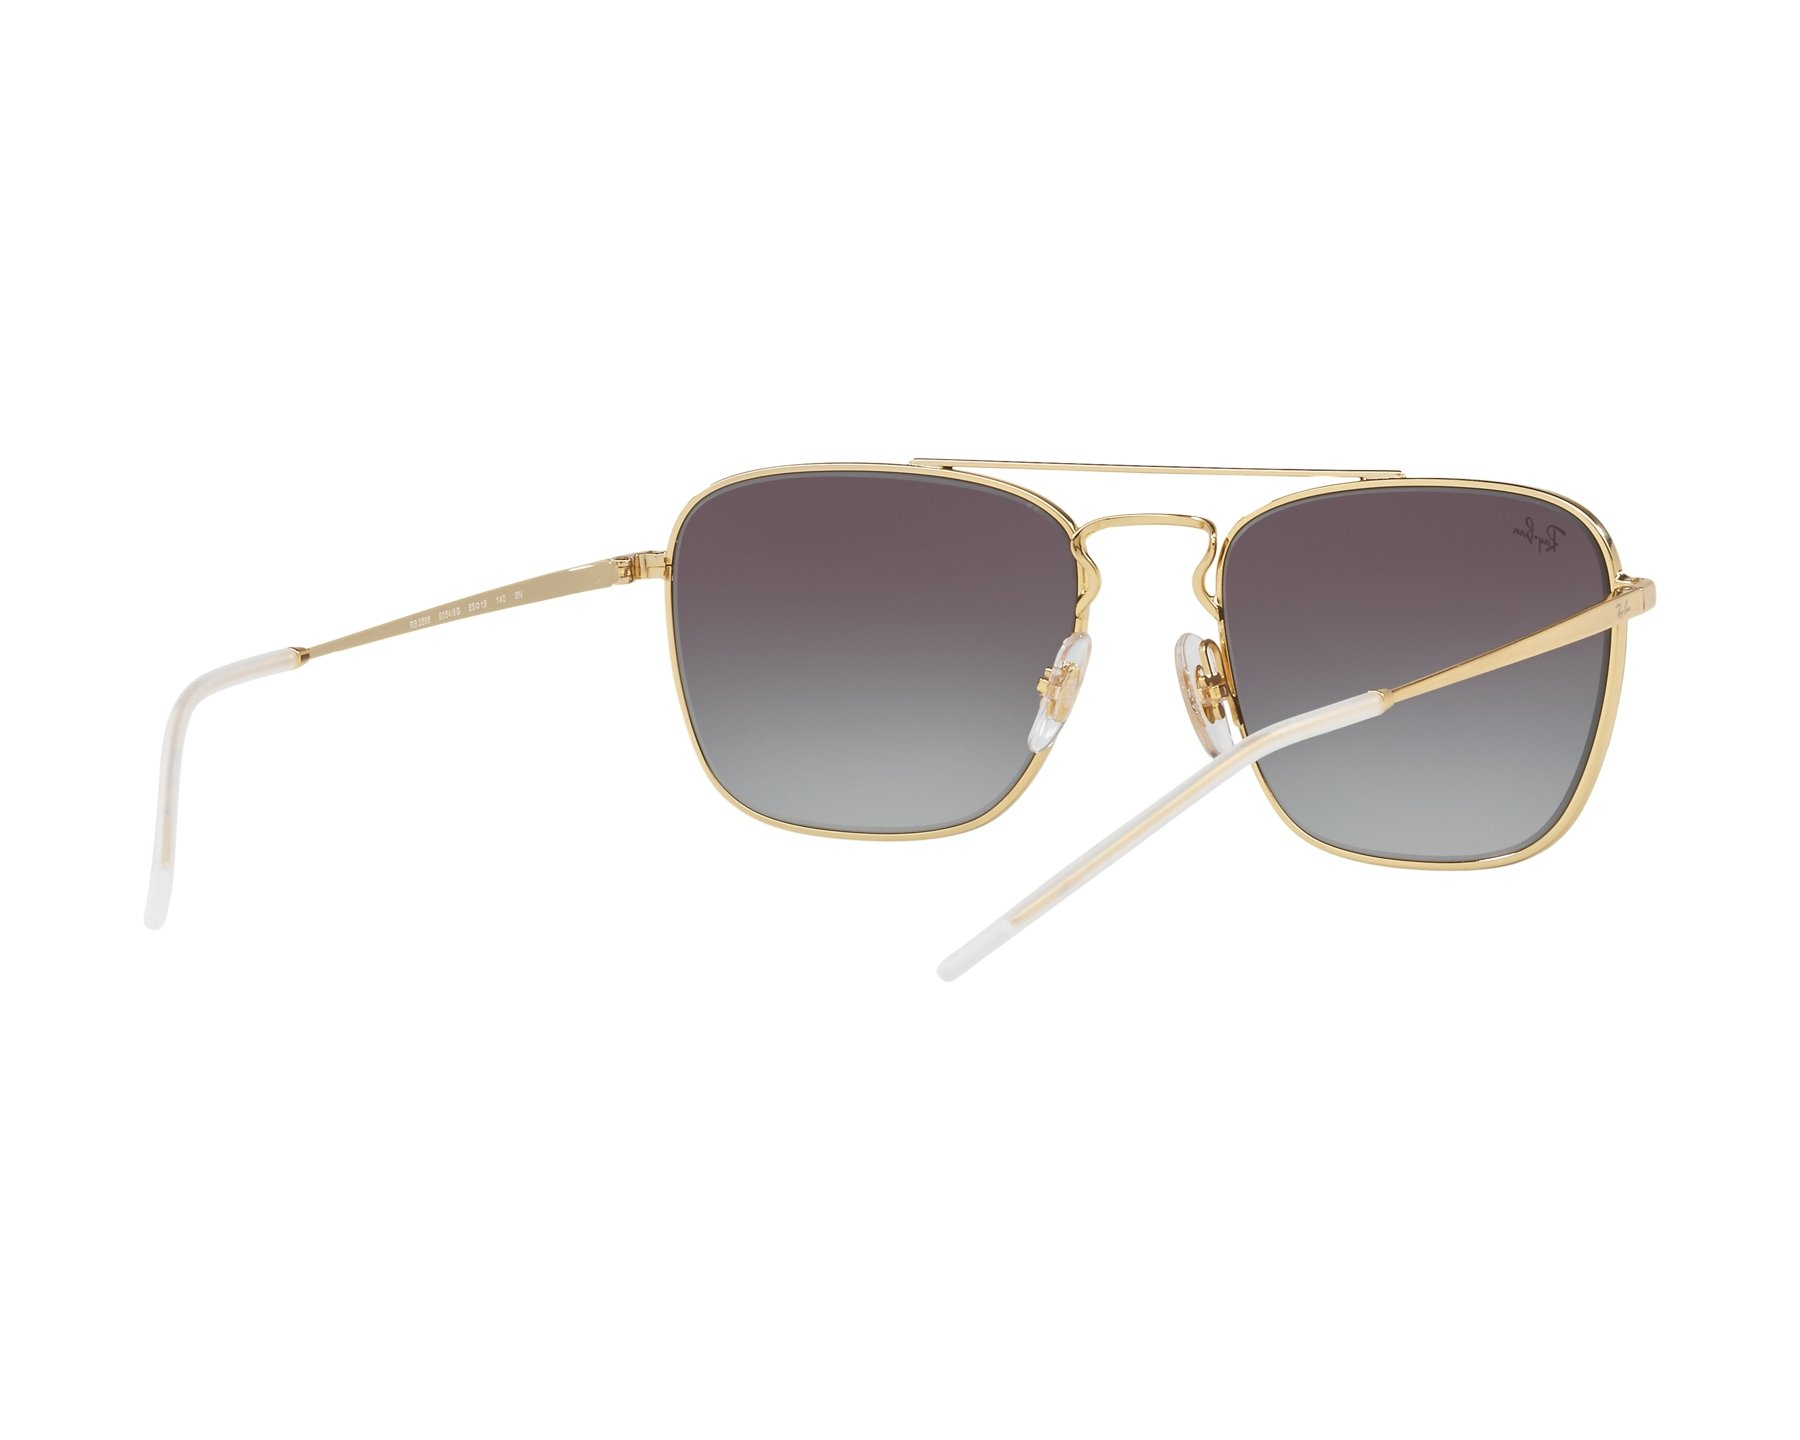 Ray-Ban 3588/90548g iefVG5Jc32